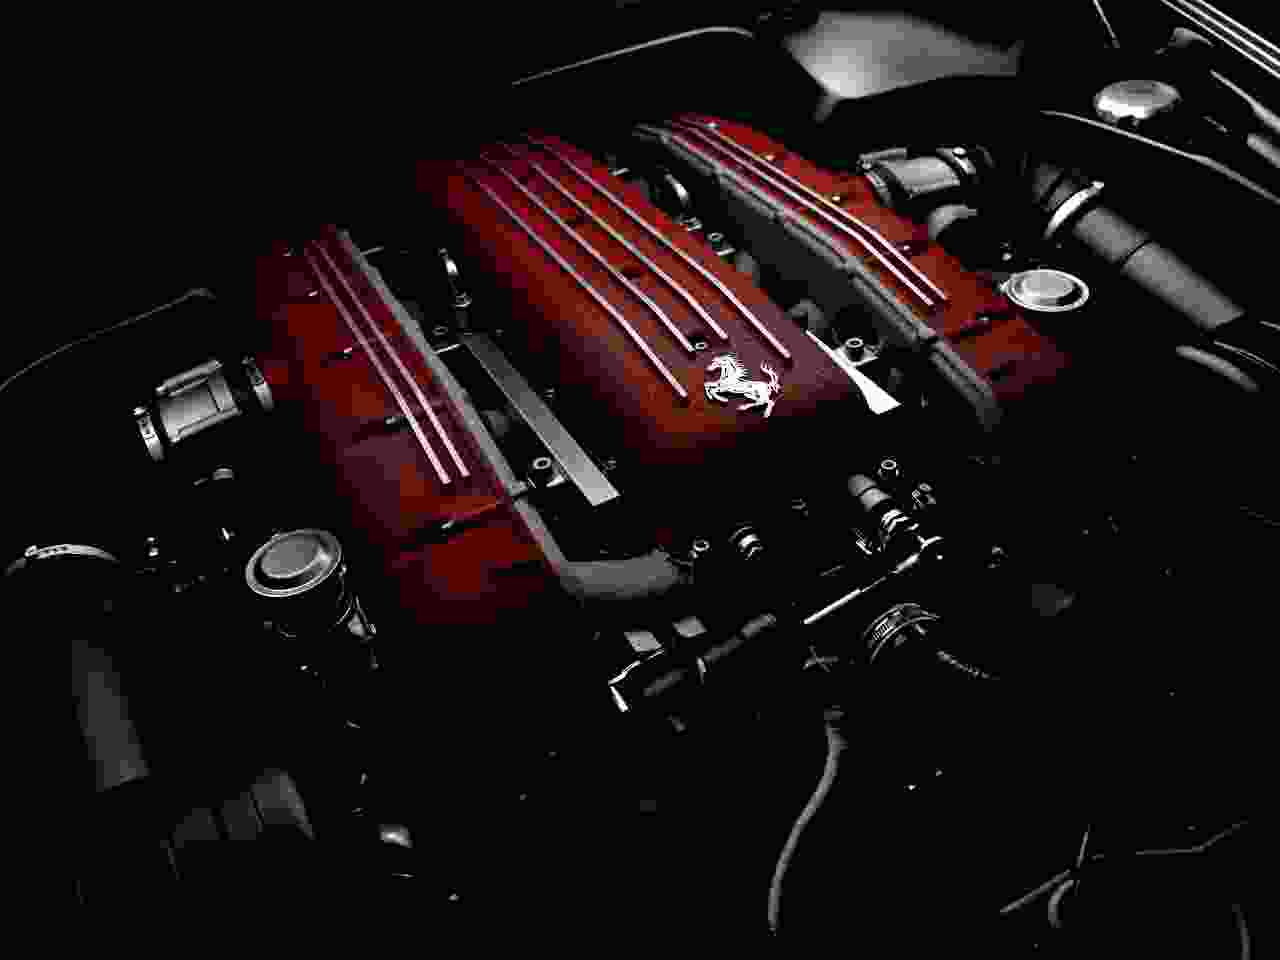 Information on cars - Ferrari engine